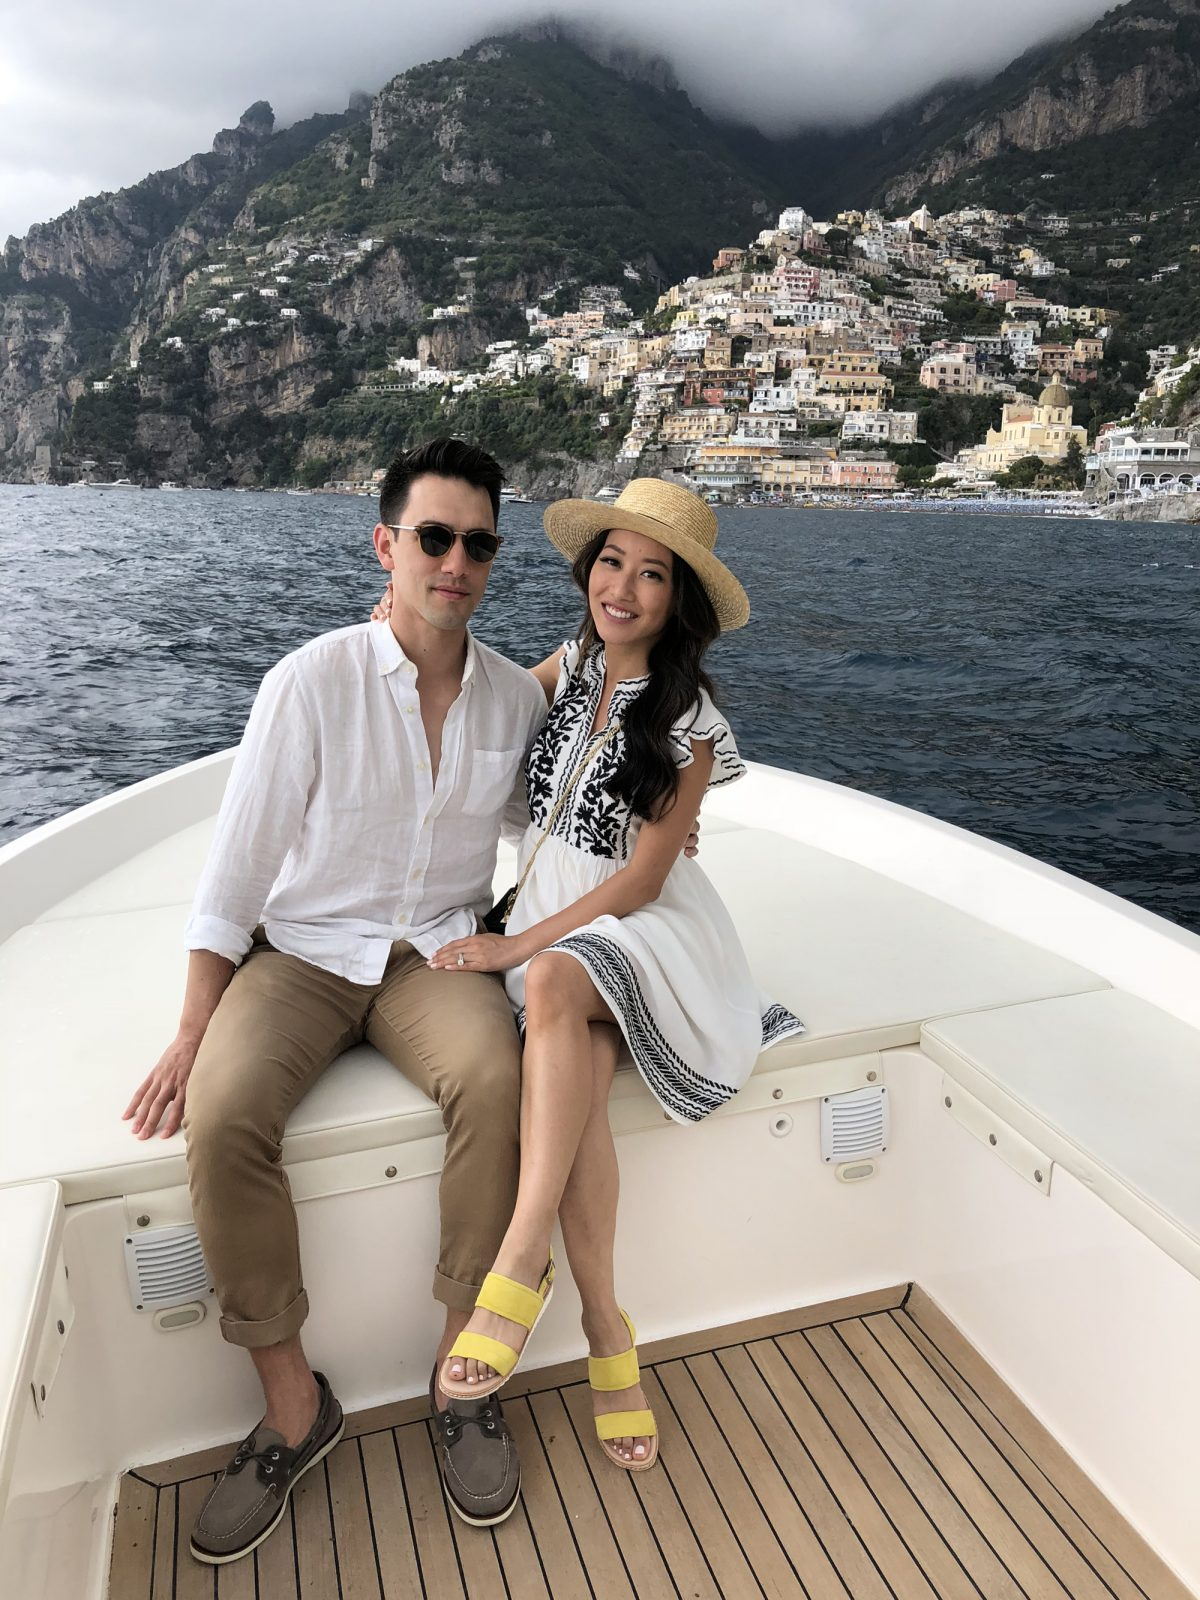 boat ride on positano amalfi coast italy couple trip